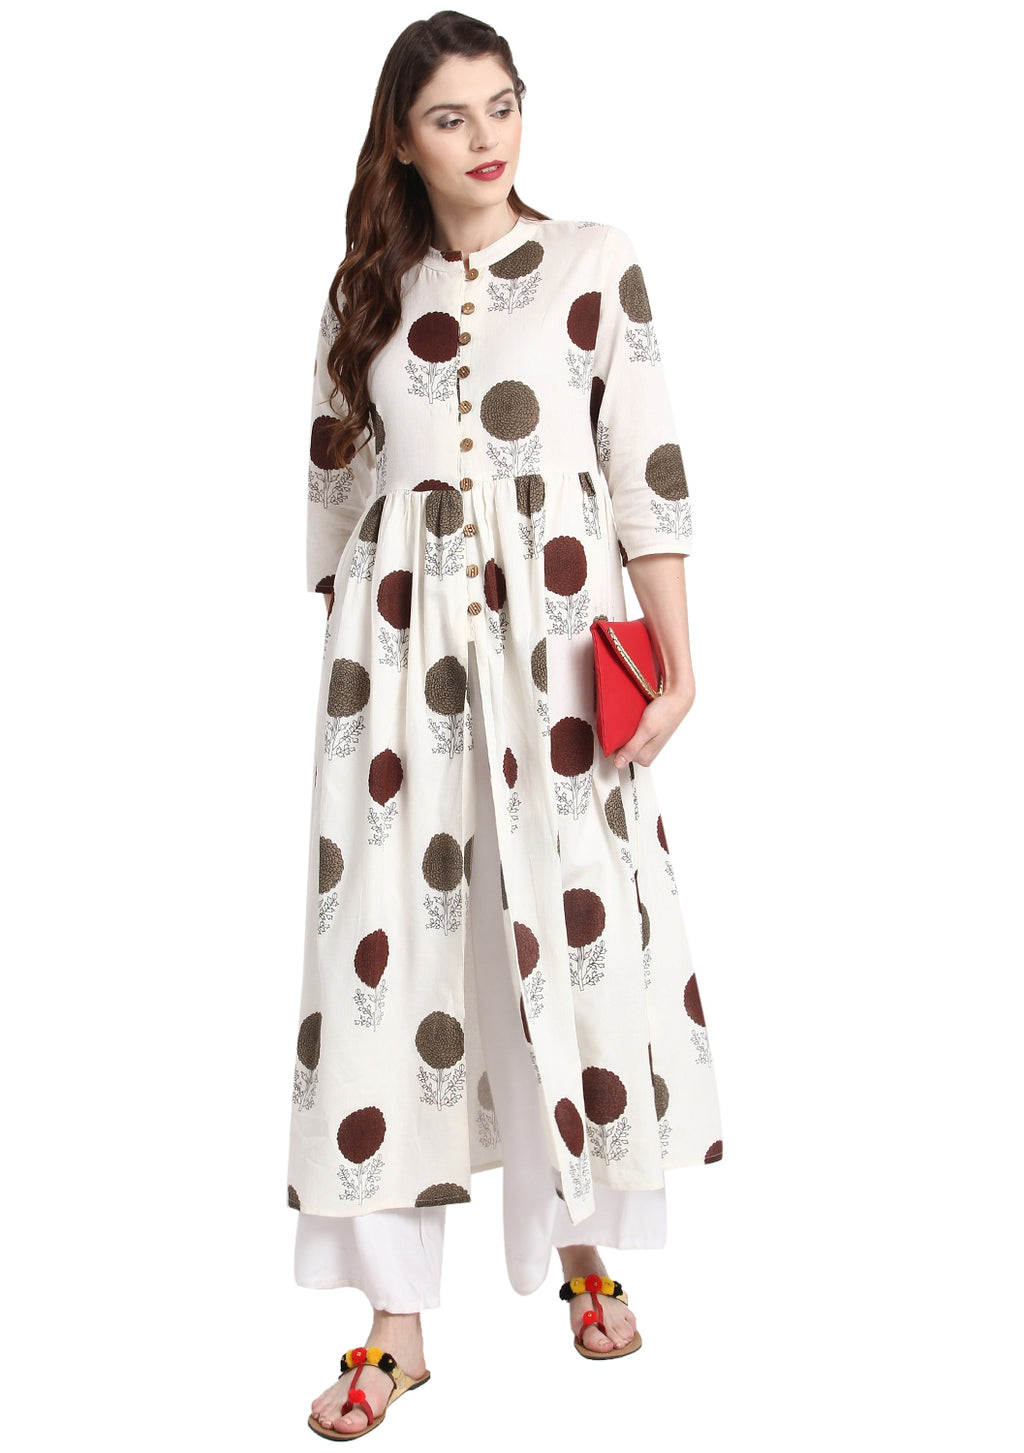 White Color Cotton Readymade Party Wear Kurtis ( Sizes-36,38,40,42,44) Janasya Catlog SJ-10259